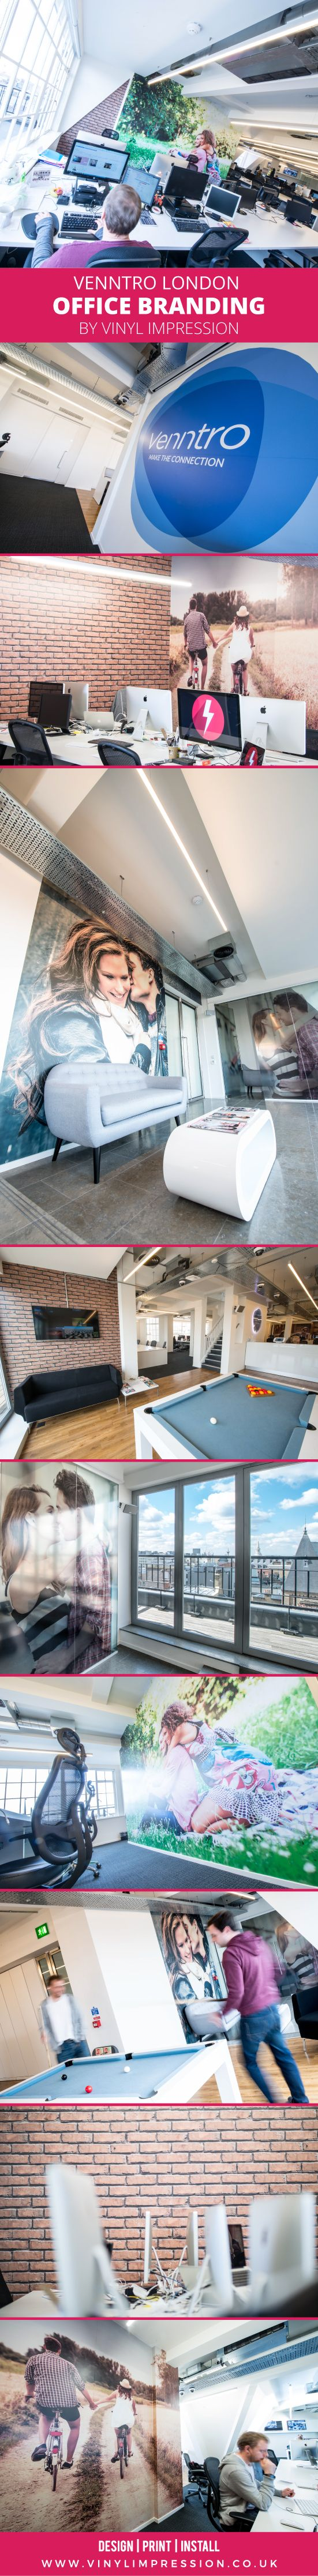 1044 best office wall graphics images on pinterest office wall large wall murals and brick pattern wallpaper designed printed installed by vinyl impression